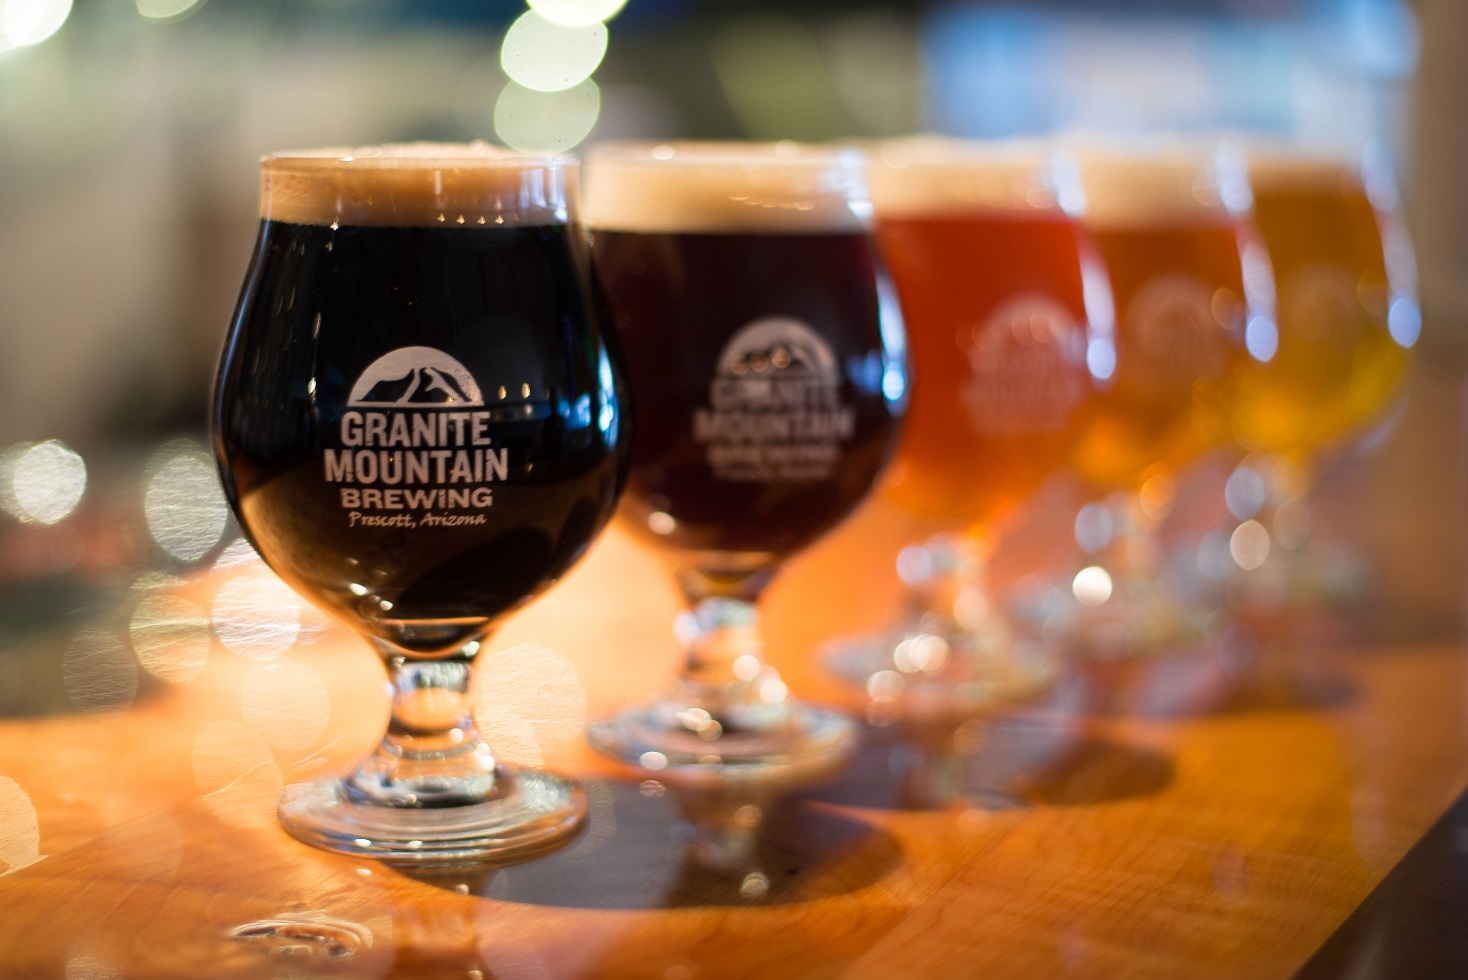 Beer Appreciation @ Granite Mountain Brewing